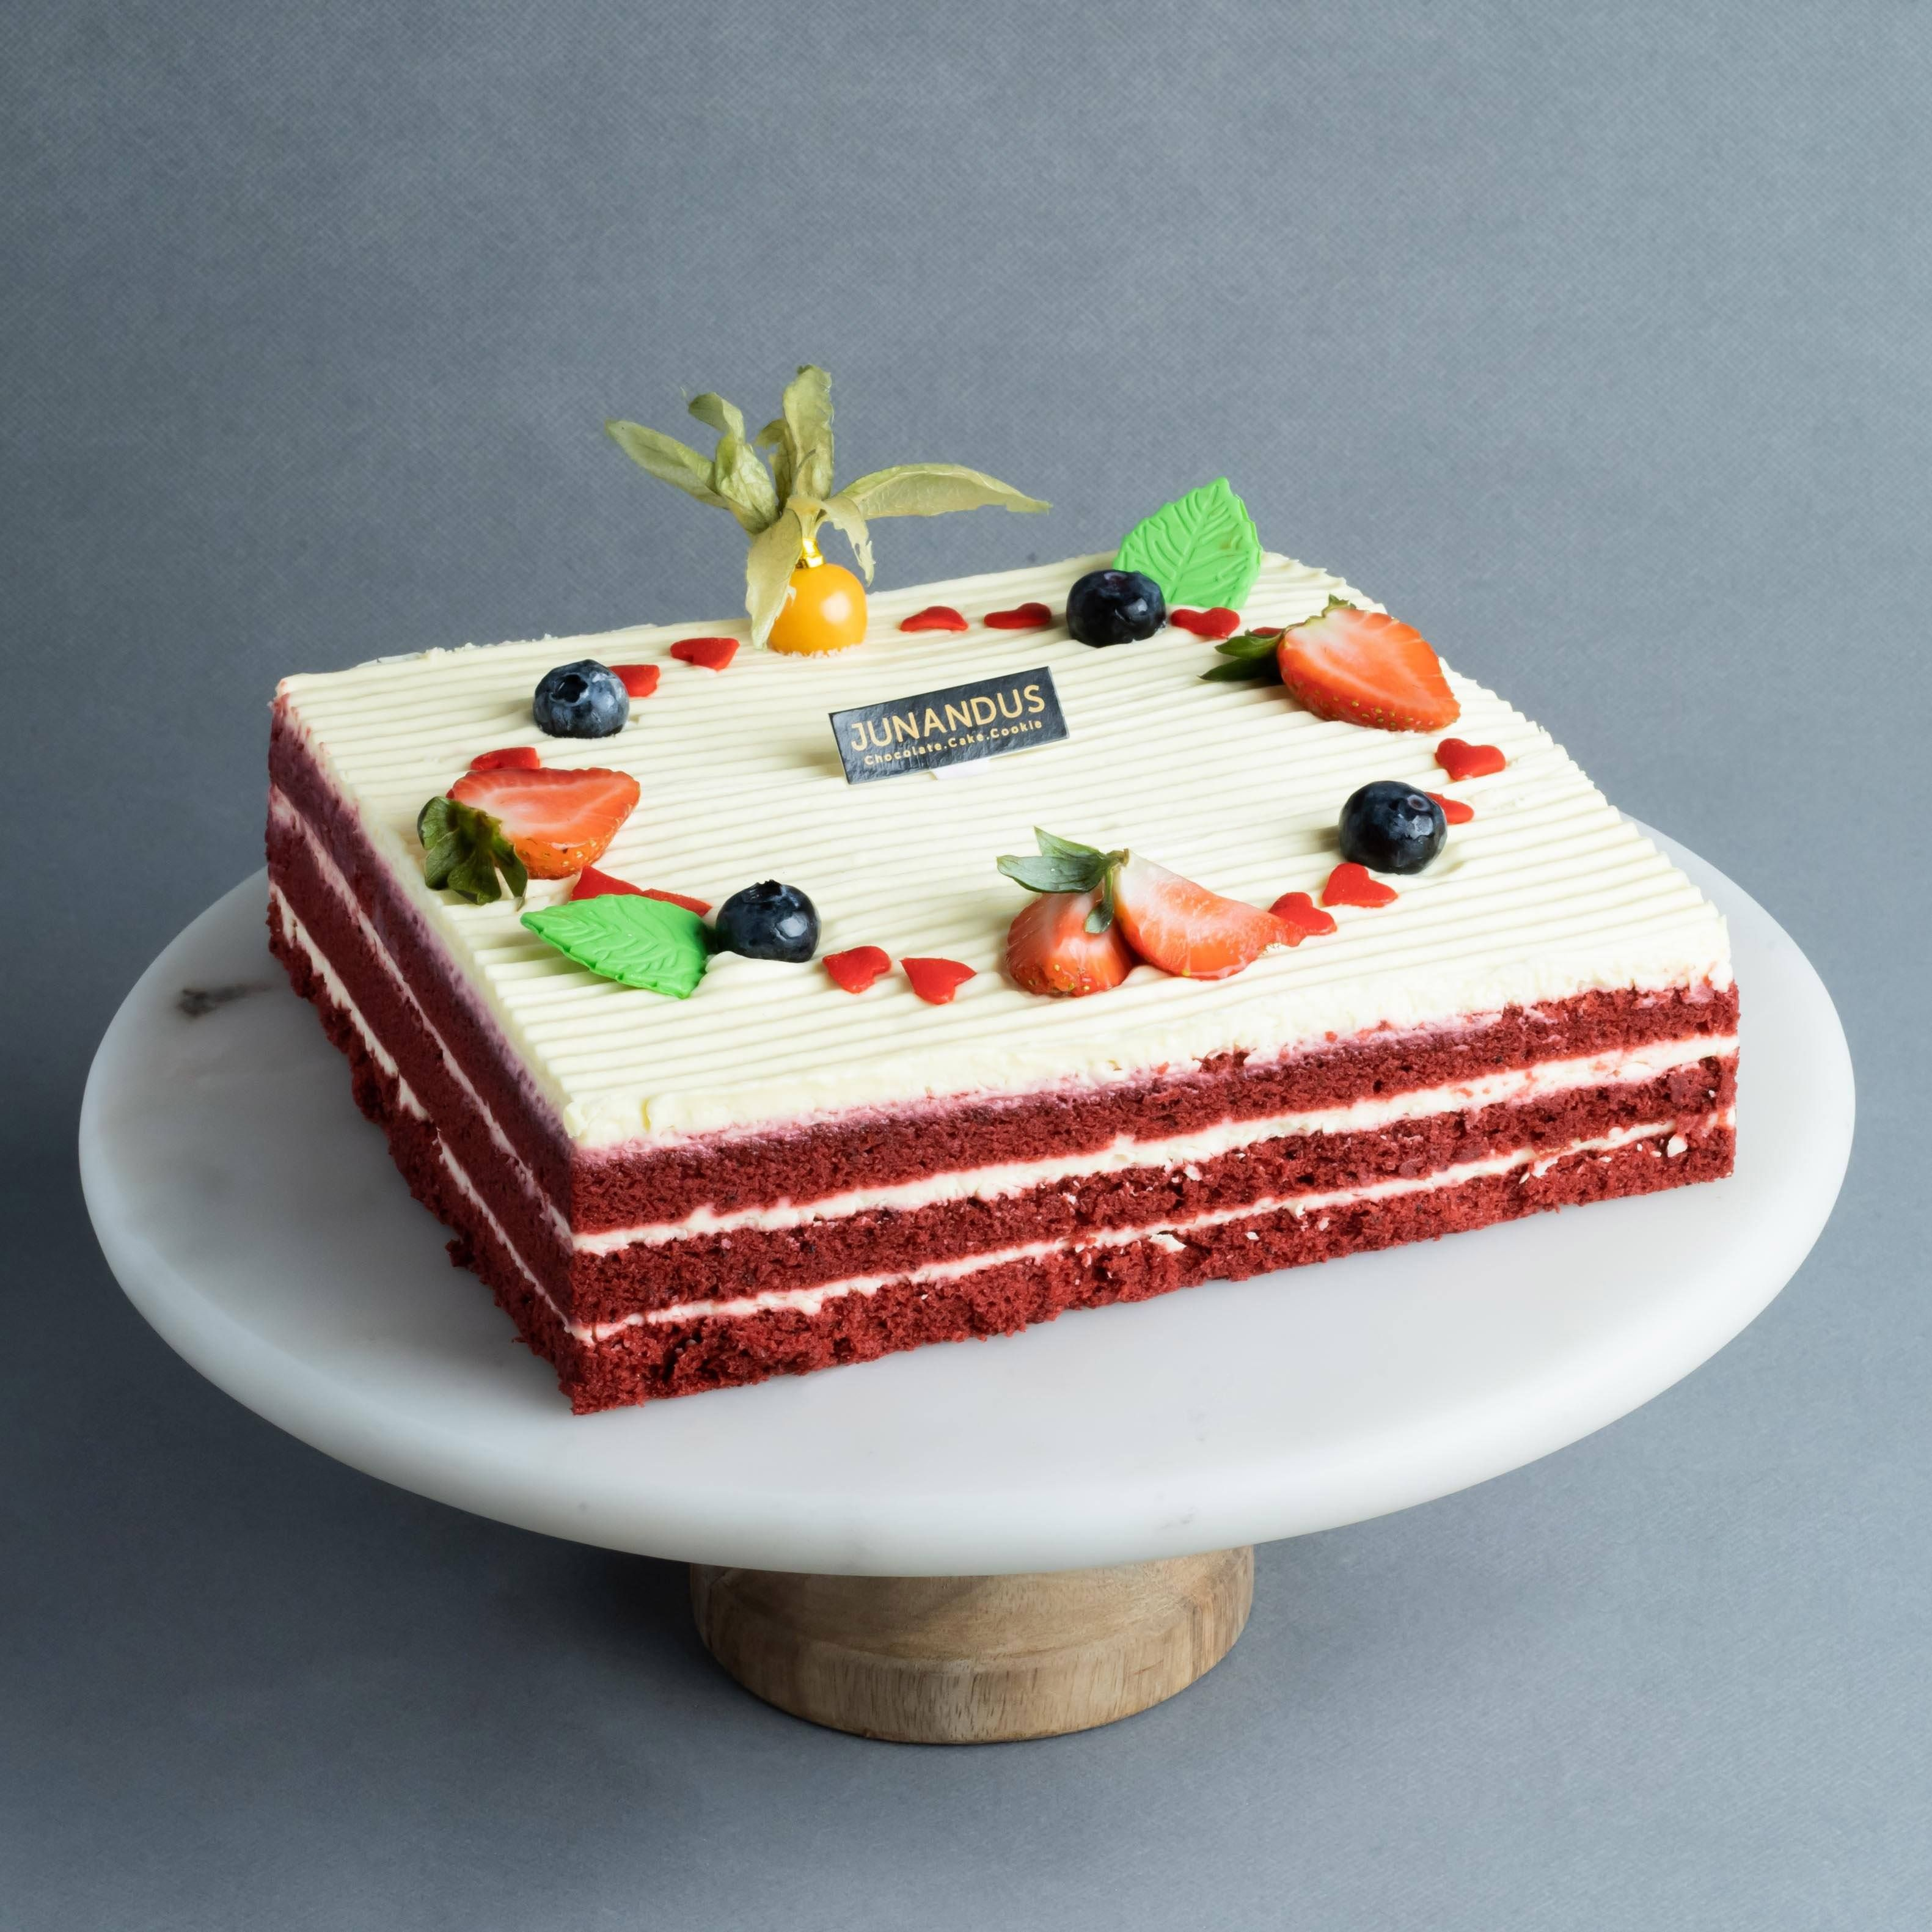 Surprising If You Have Never Tasted Or Heard Of A Red Velvet Cake Before Personalised Birthday Cards Sponlily Jamesorg